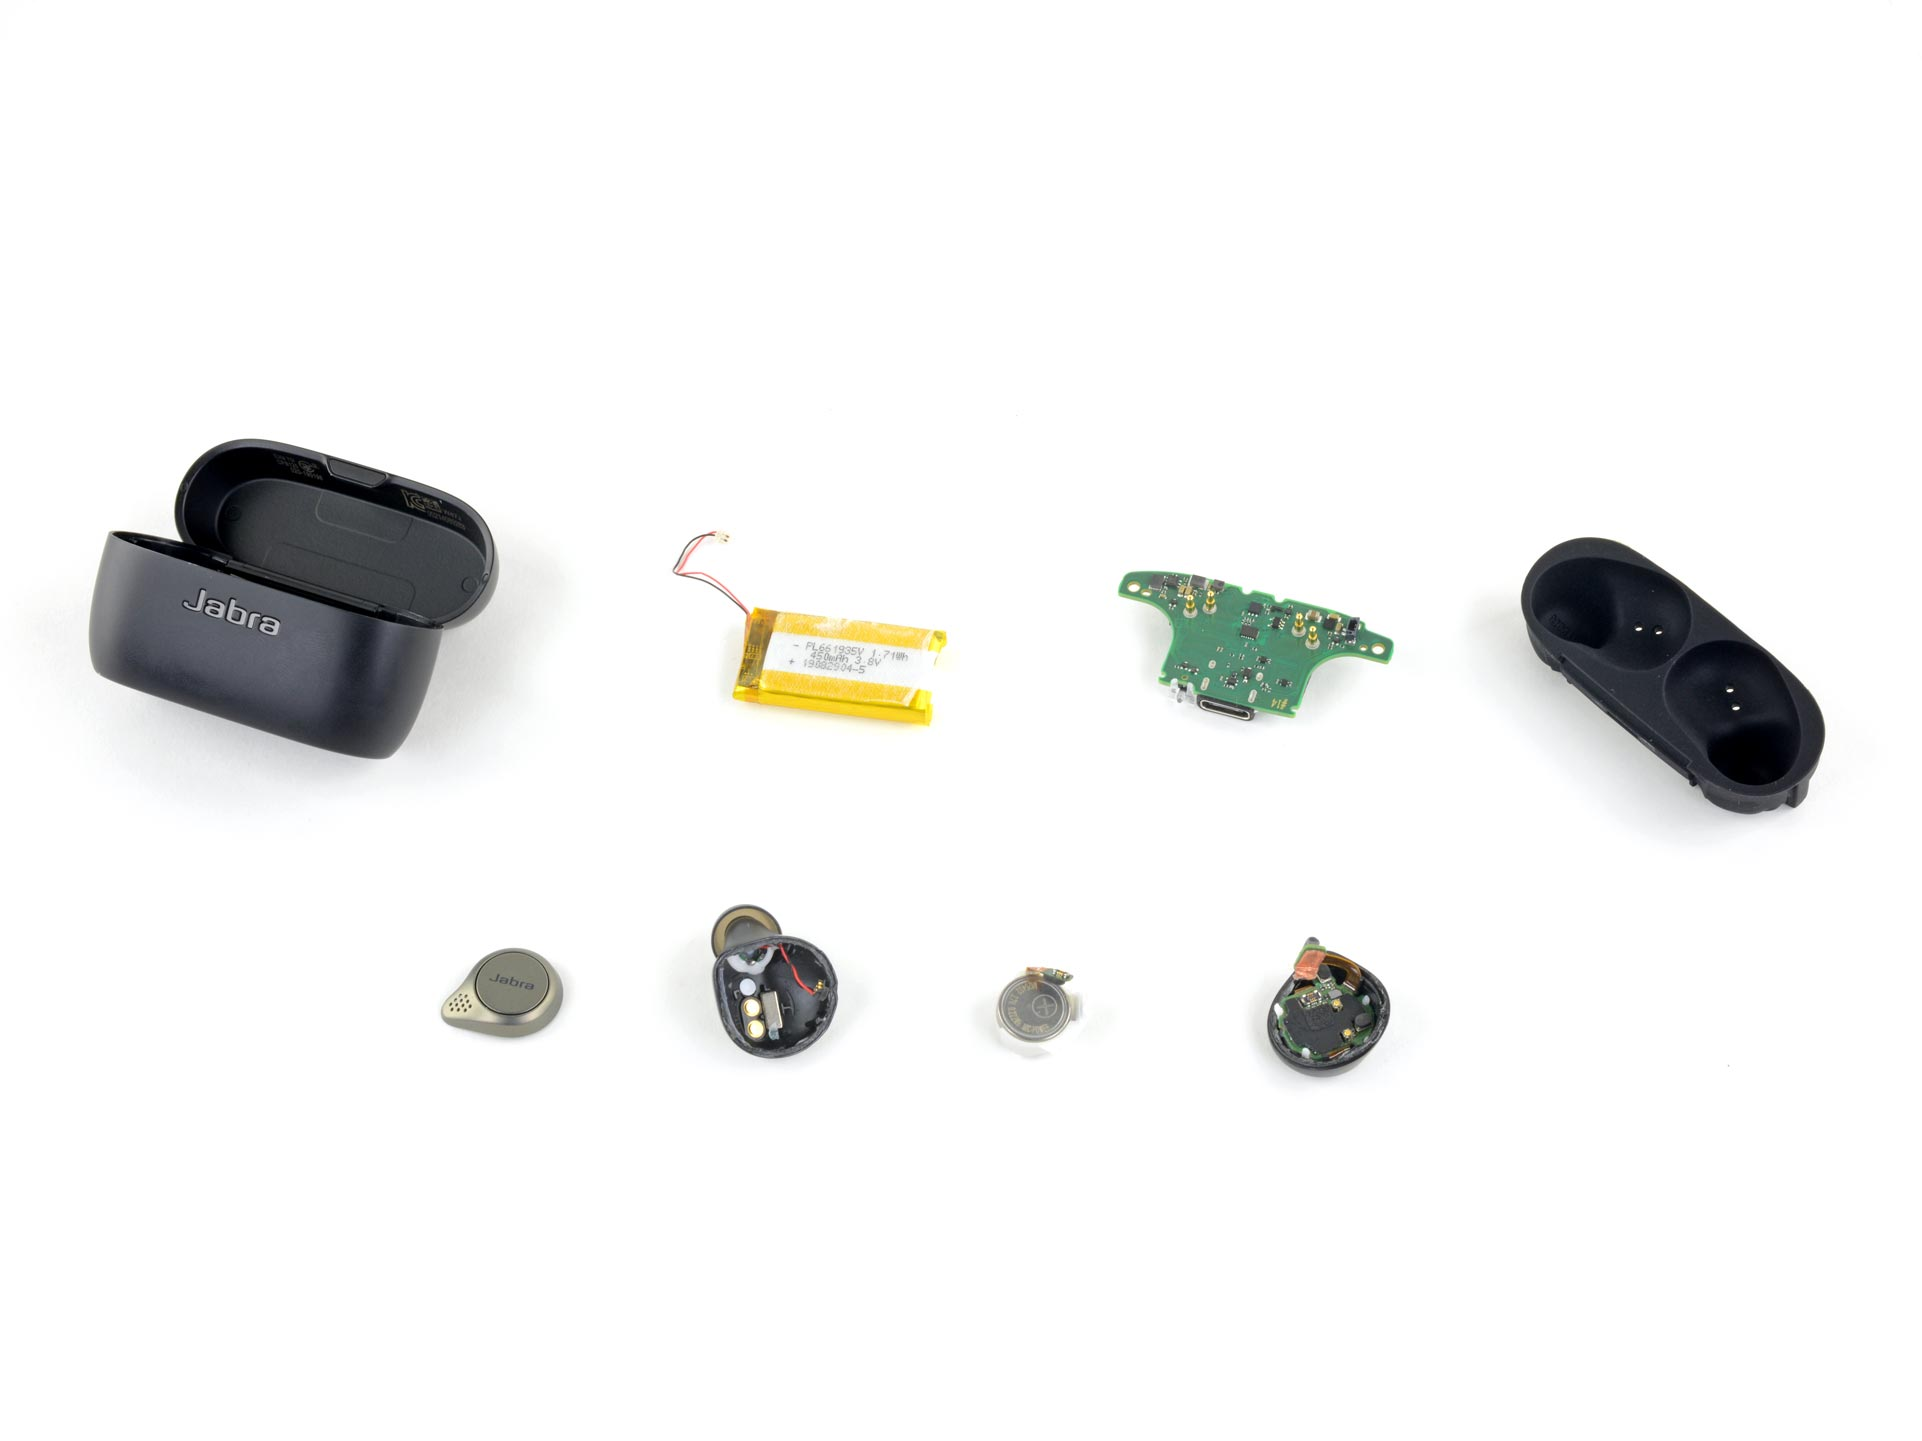 Layout shot of the Jabra Elite 75T buds and case